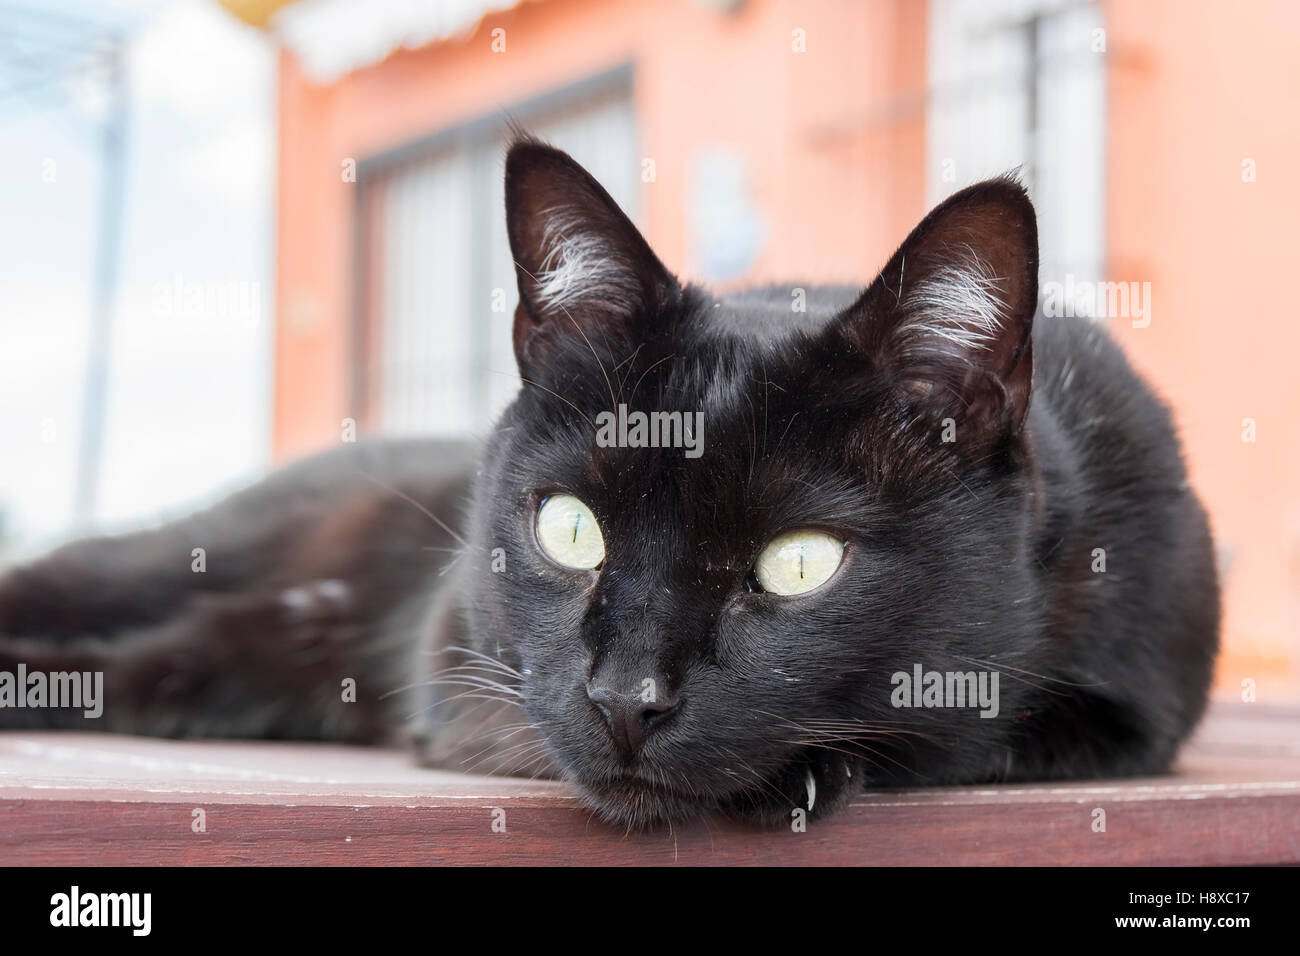 Black cat resting on a table - Stock Image